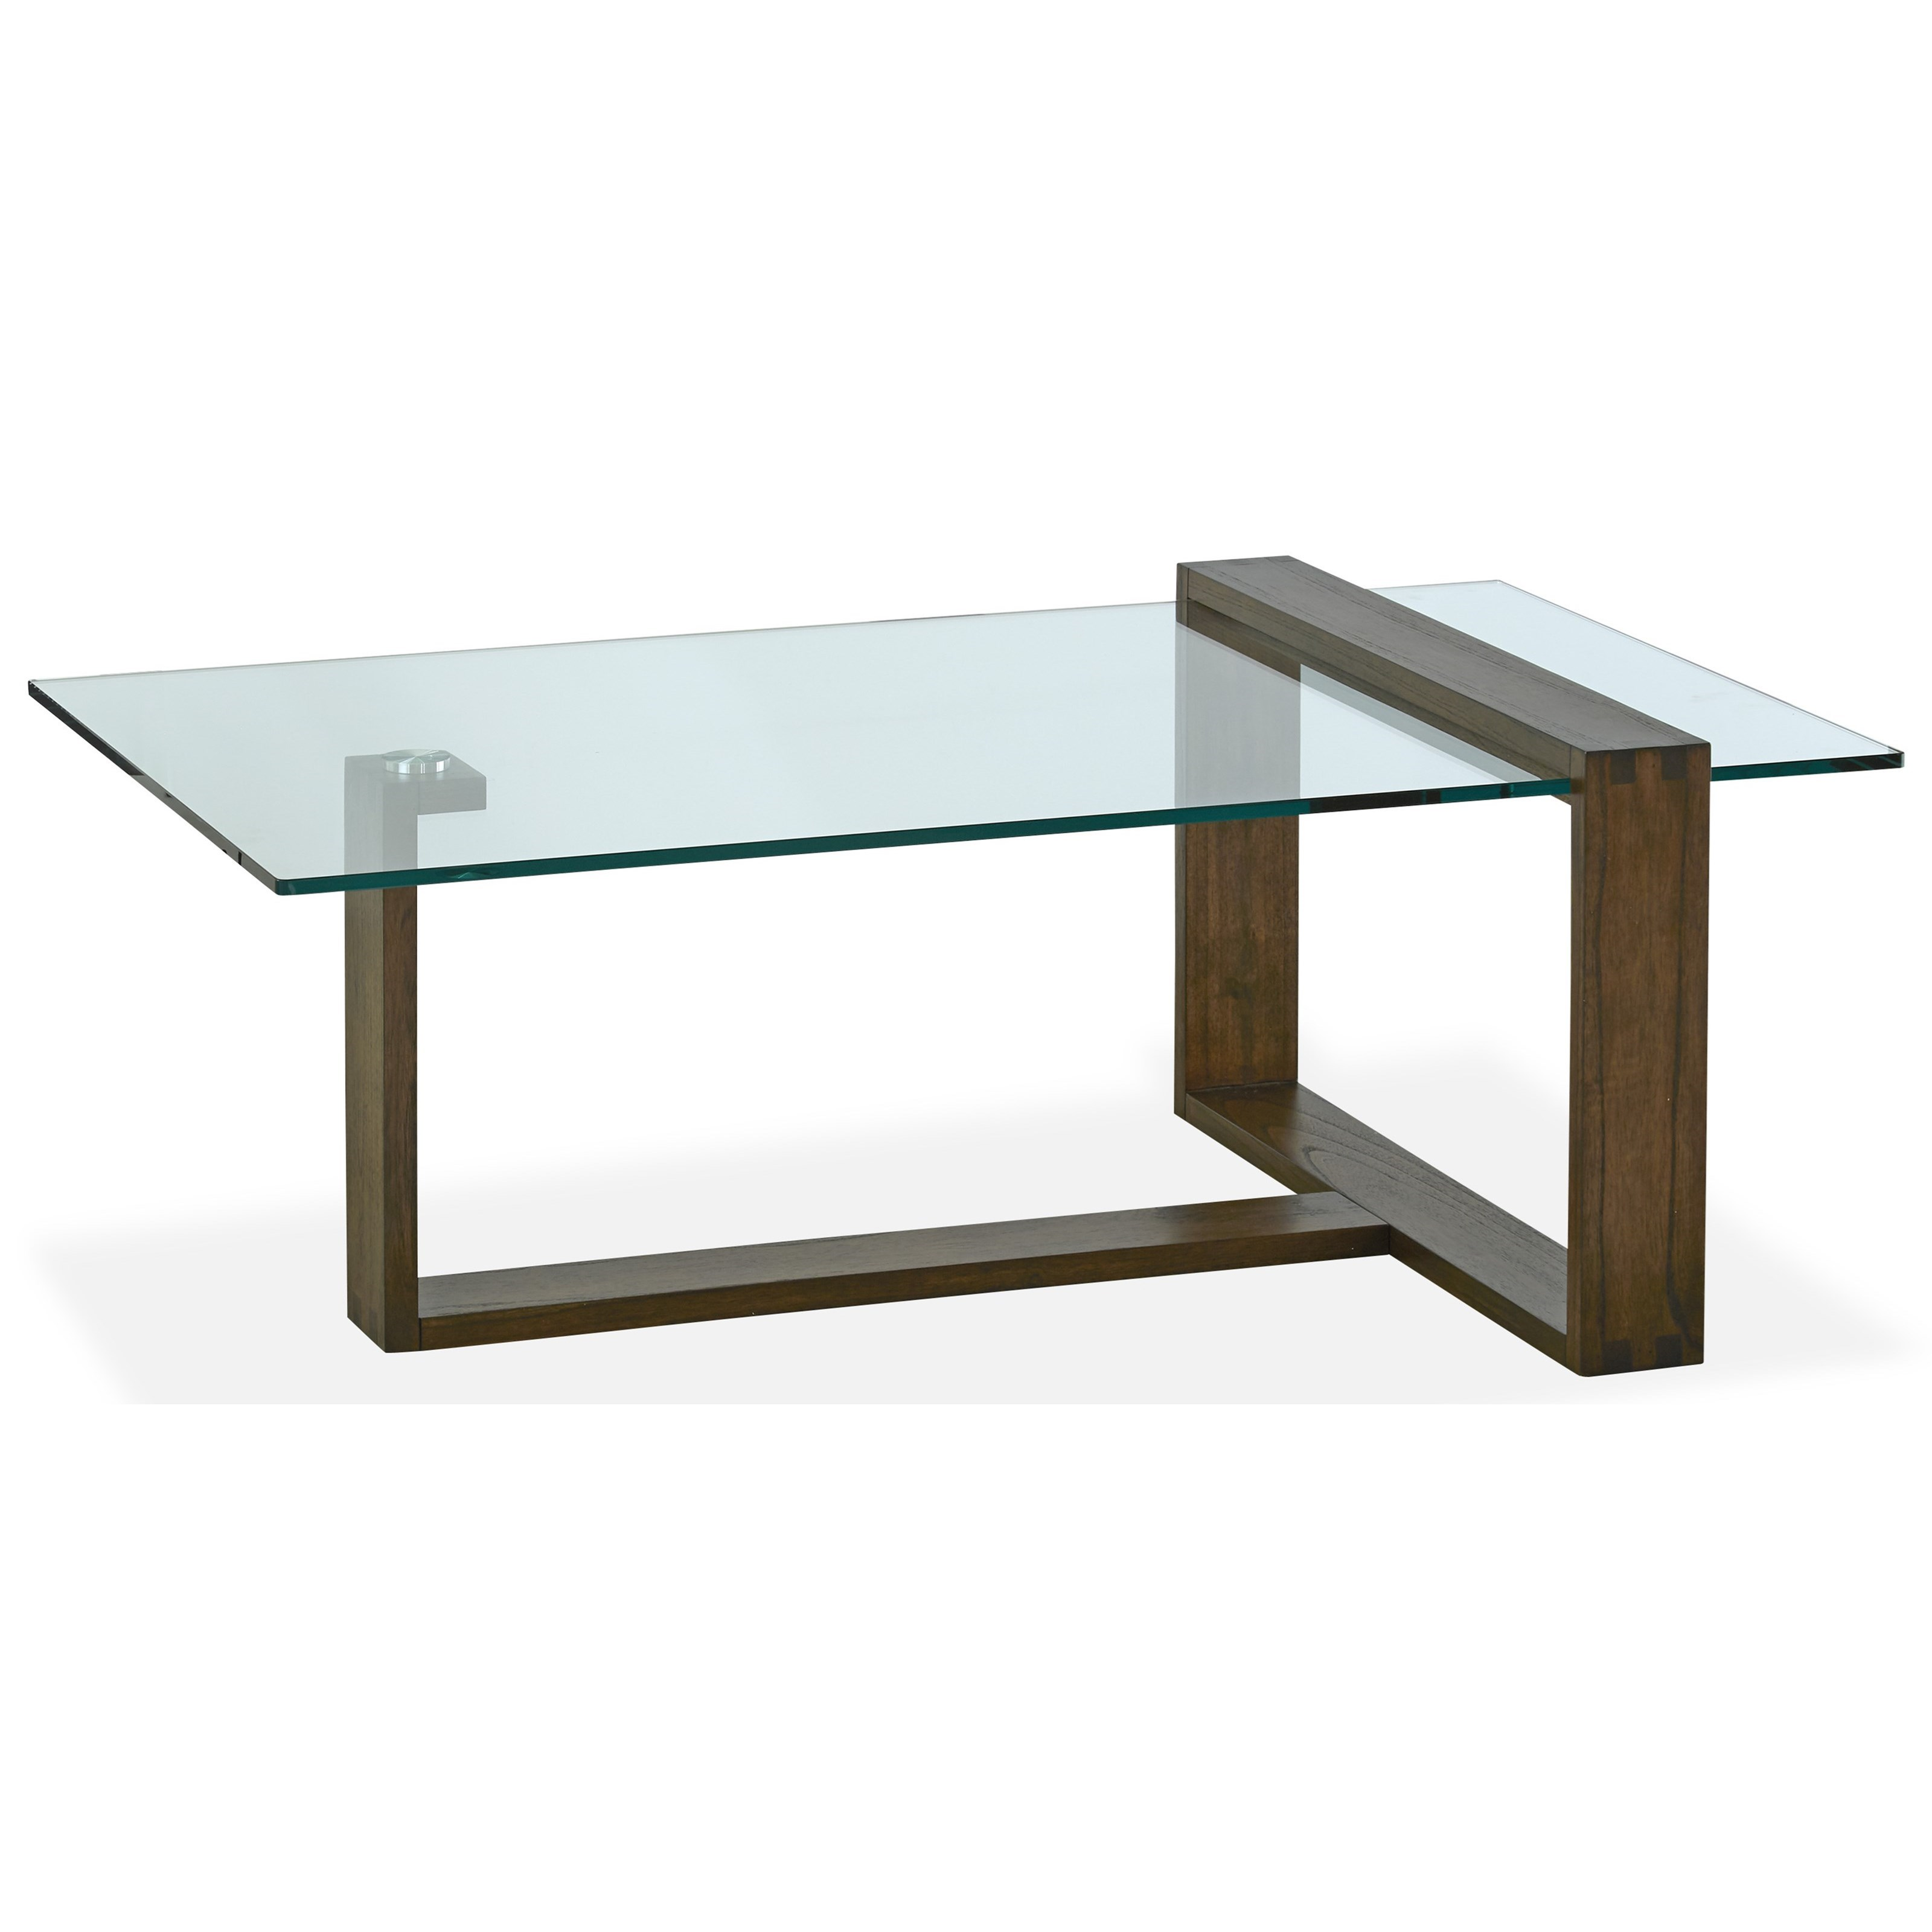 Bristow Rectangular Cocktail Table by Magnussen Home at HomeWorld Furniture